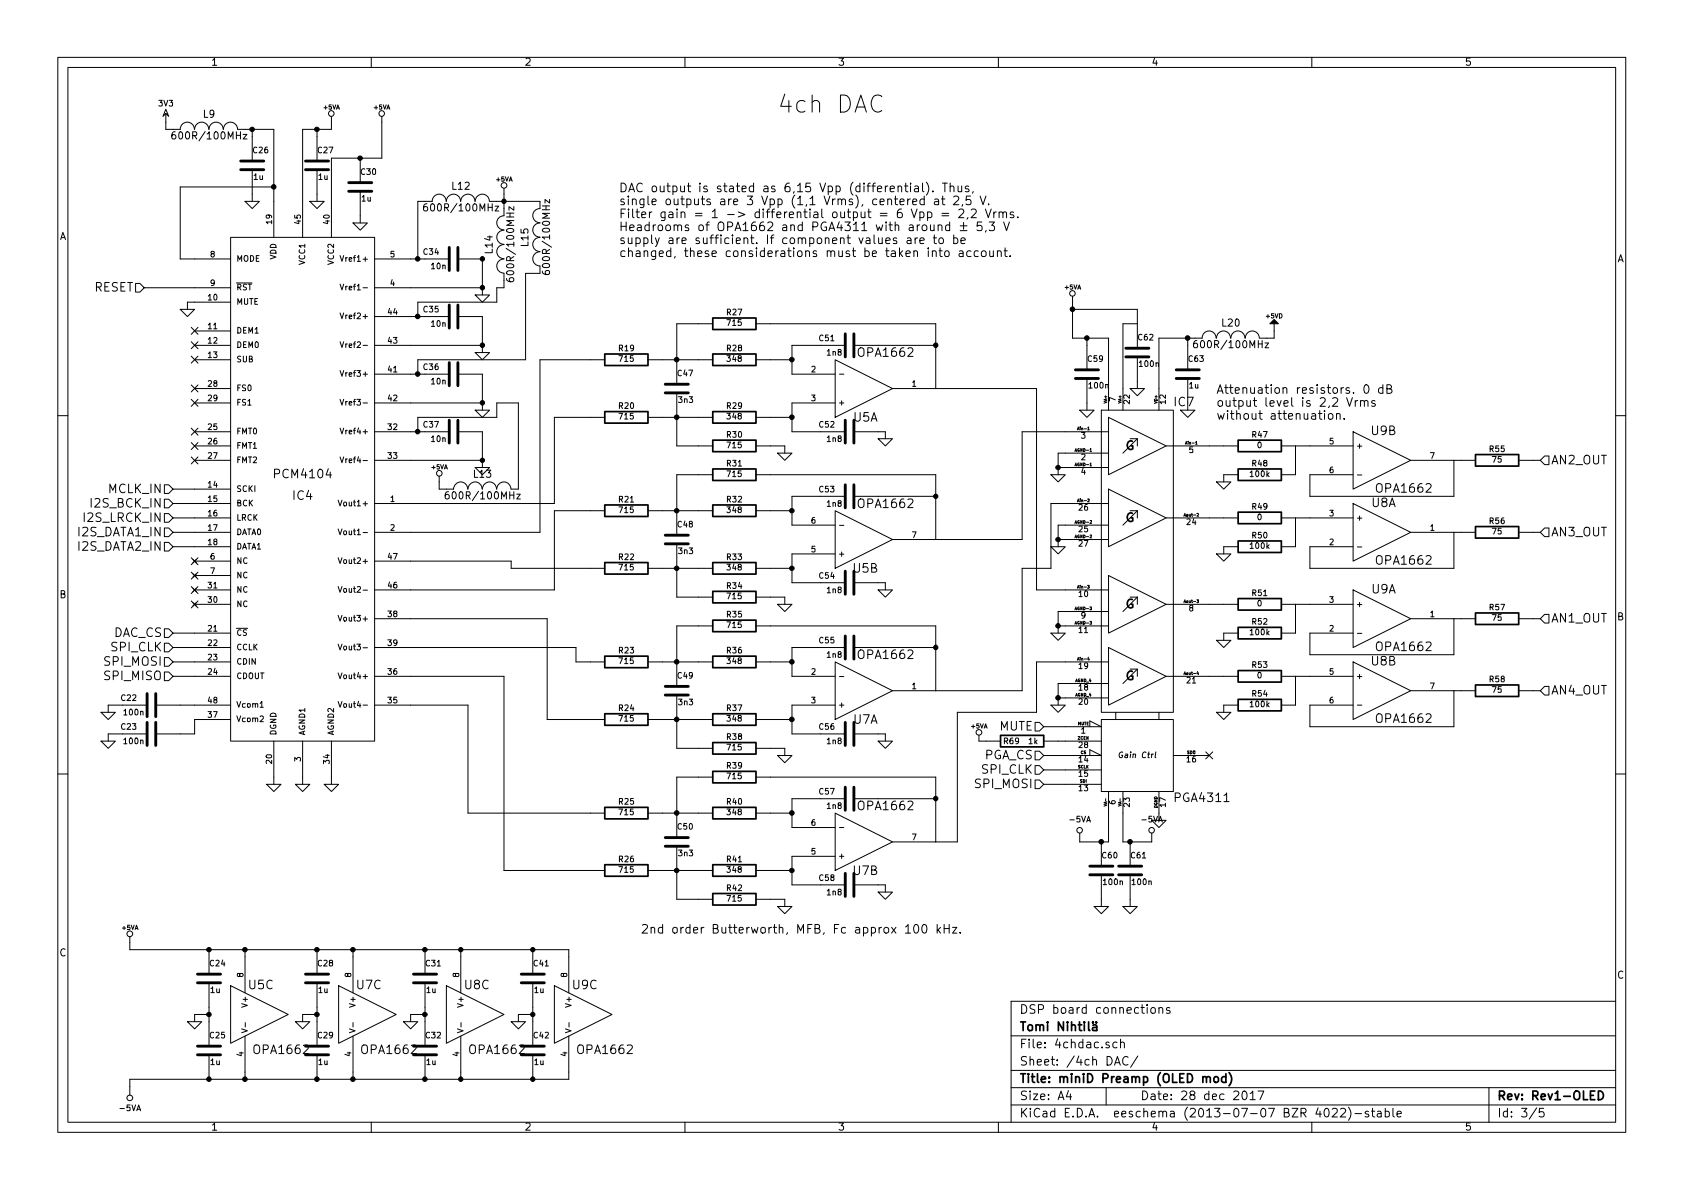 Minid Preamp Tiny Minidsp Based 4 Channel Preamplifier How To Build Automatic Loudness Control Circuit Schematic Dac Analog Stage And Volume